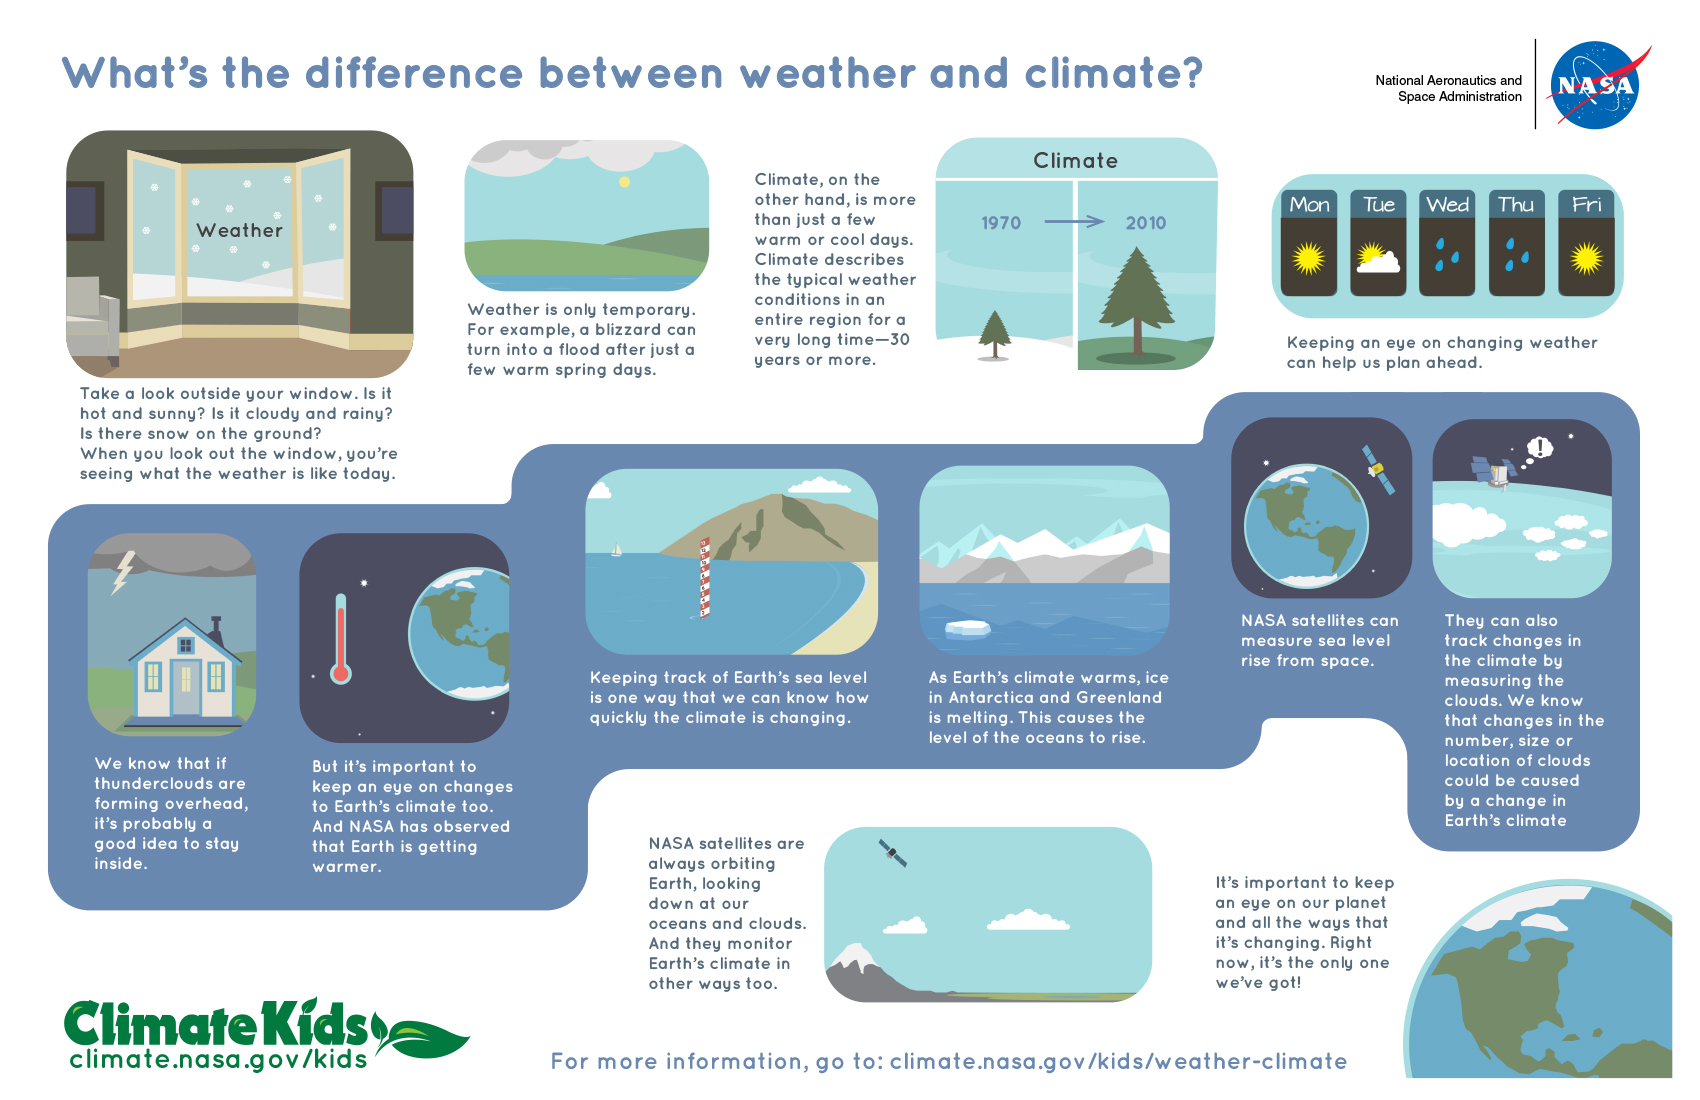 hight resolution of What's the Difference Between Weather and Climate?   NASA Climate Kids